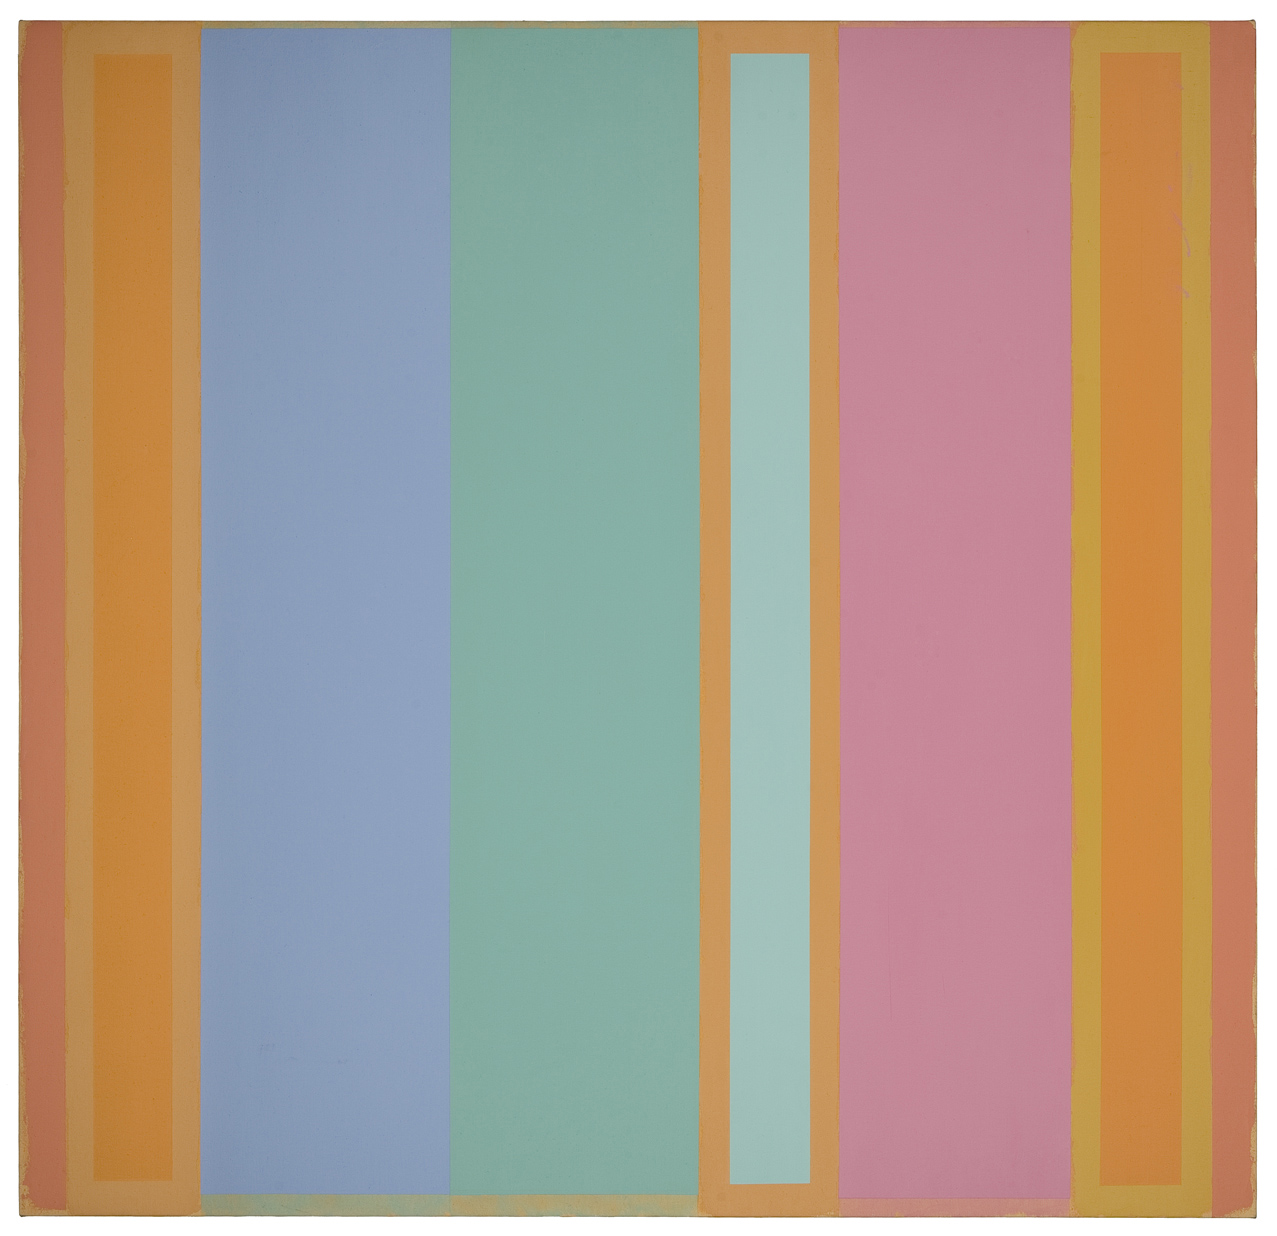 Blind Spot, 2005  acrylic on canvas 60 x 62 inches; 152.4 x 157.5 centimeters